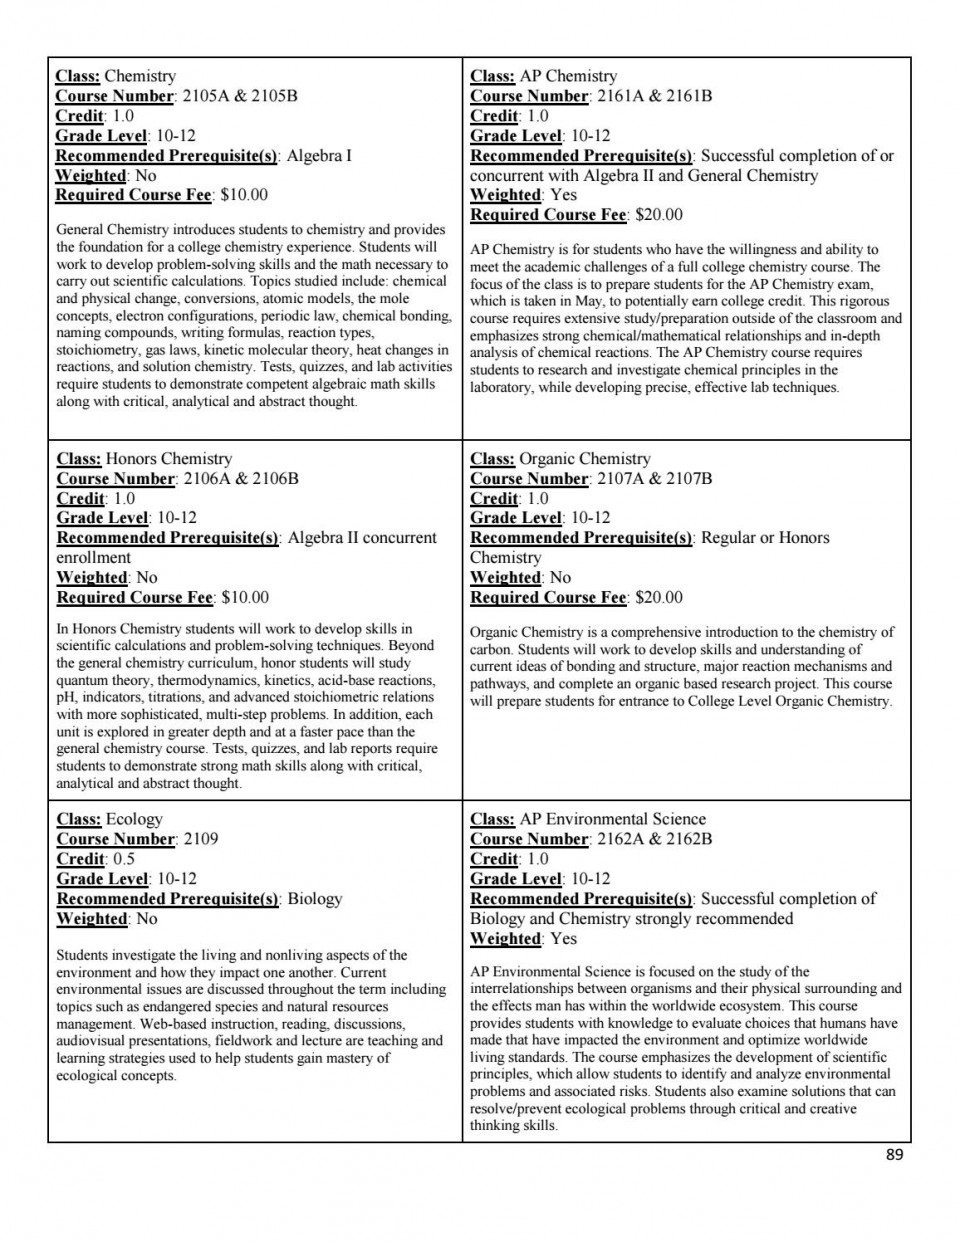 013 Research Paper Ap Chemistry Topics Page 89 Stirring 960